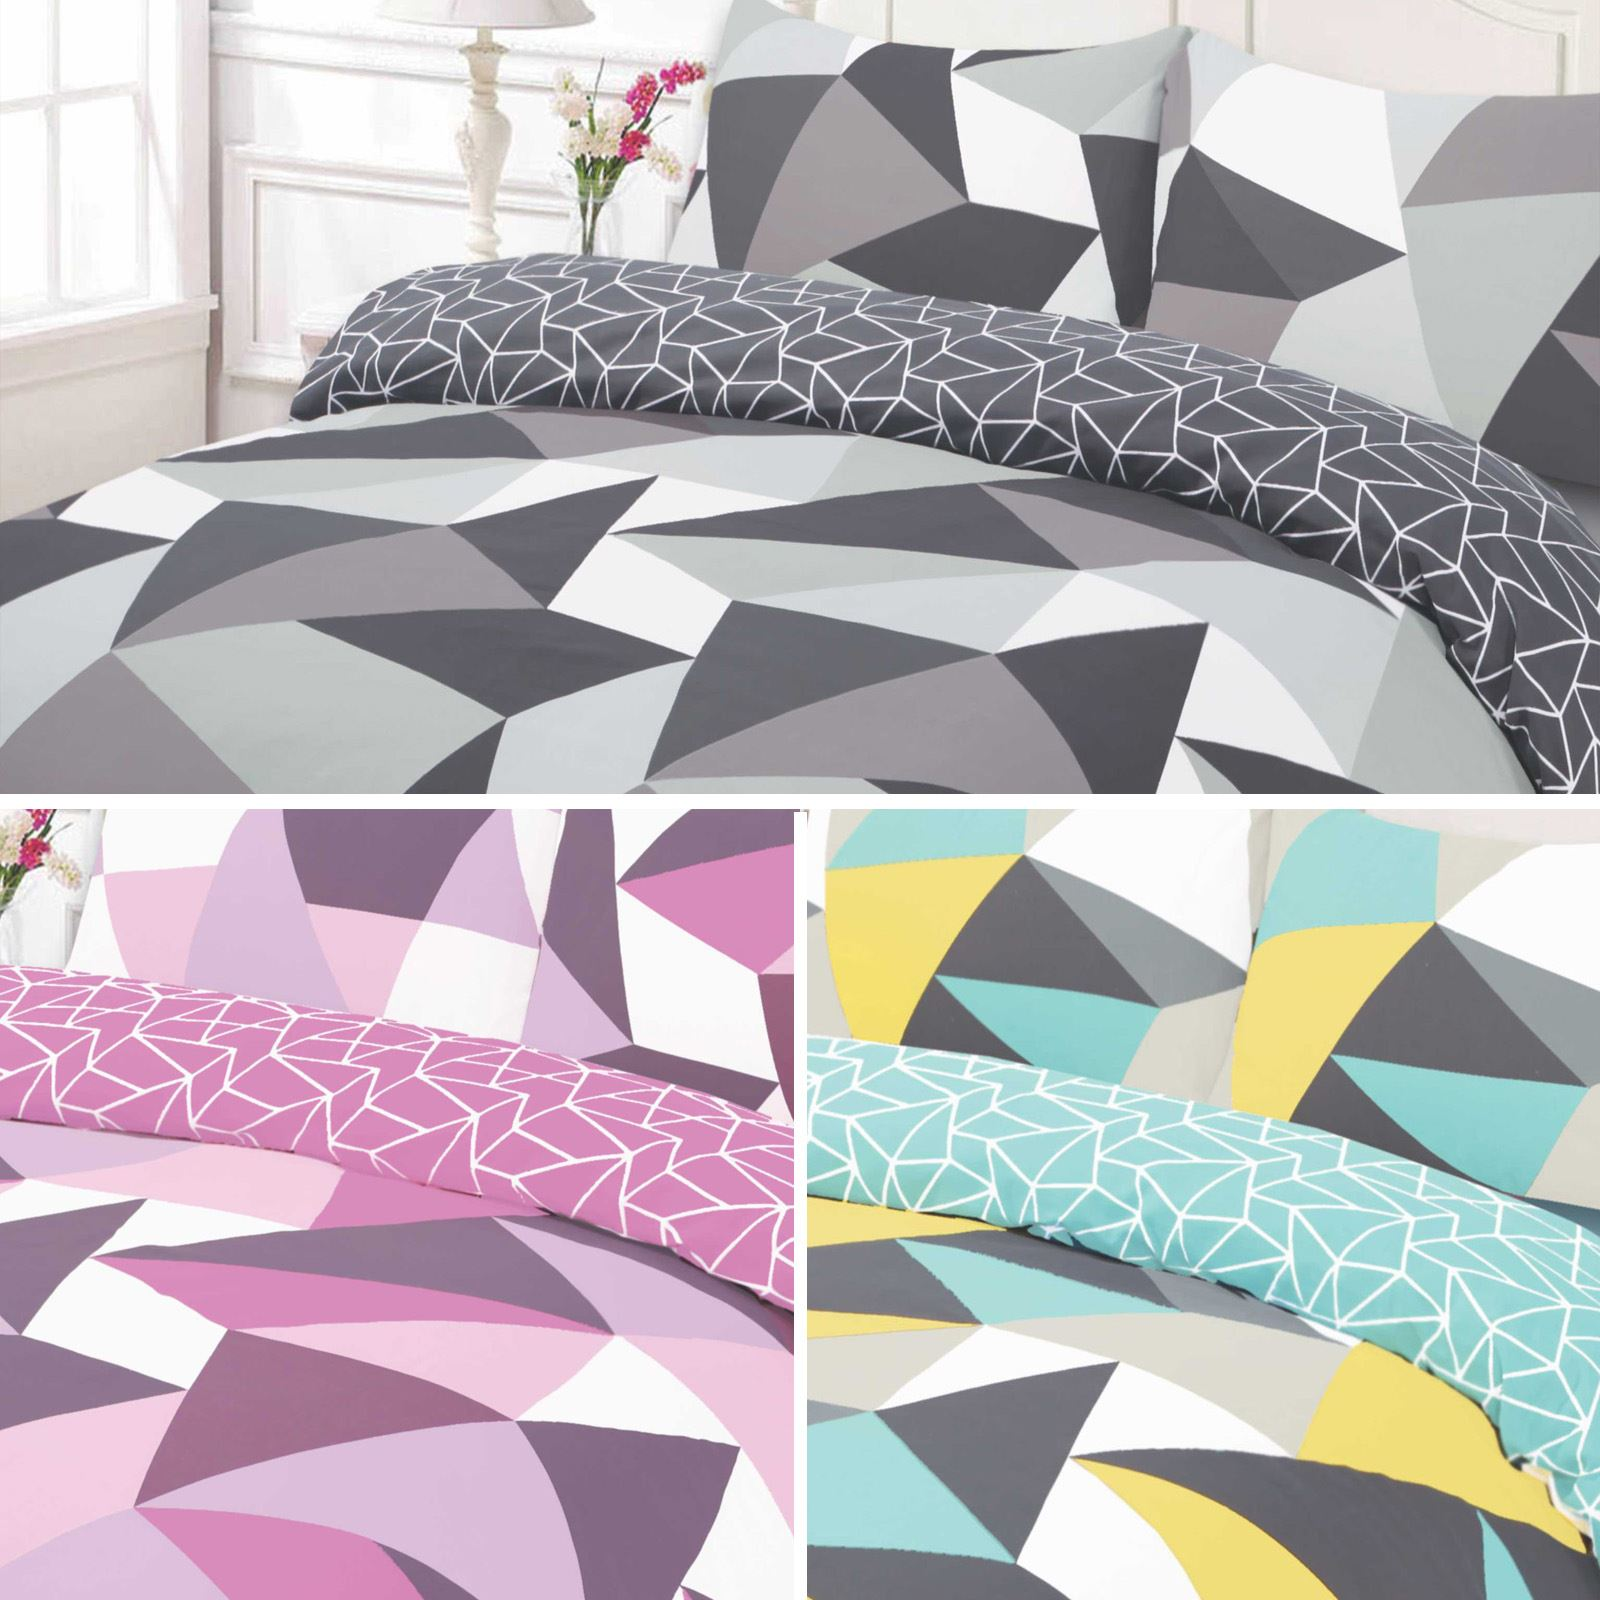 shapes geometric pattern duvet cover bedding set  ebay - a bold and striking geometric design with a modern twist will add acontemporary feel to any bedroom this powerful duvet set combines thesoftness of